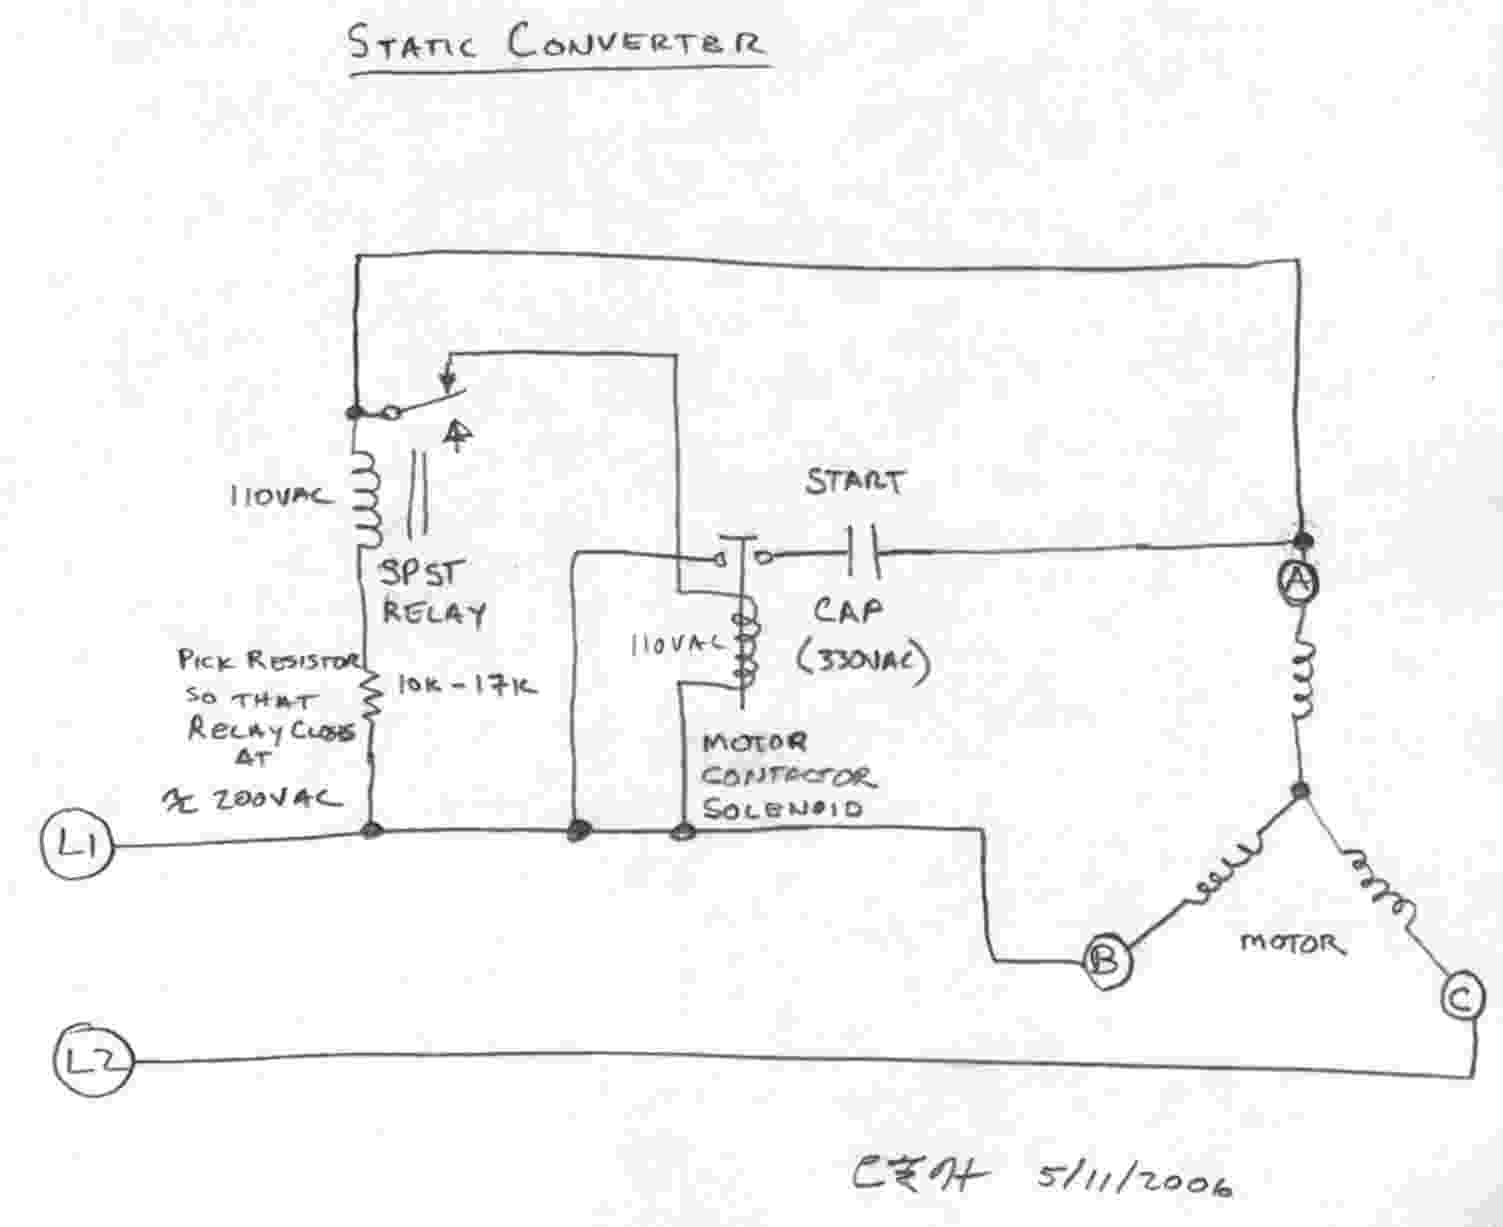 Lc 7790 Three Phase Static Converter On 3 Phase Circuit Breaker Wiring Download Diagram